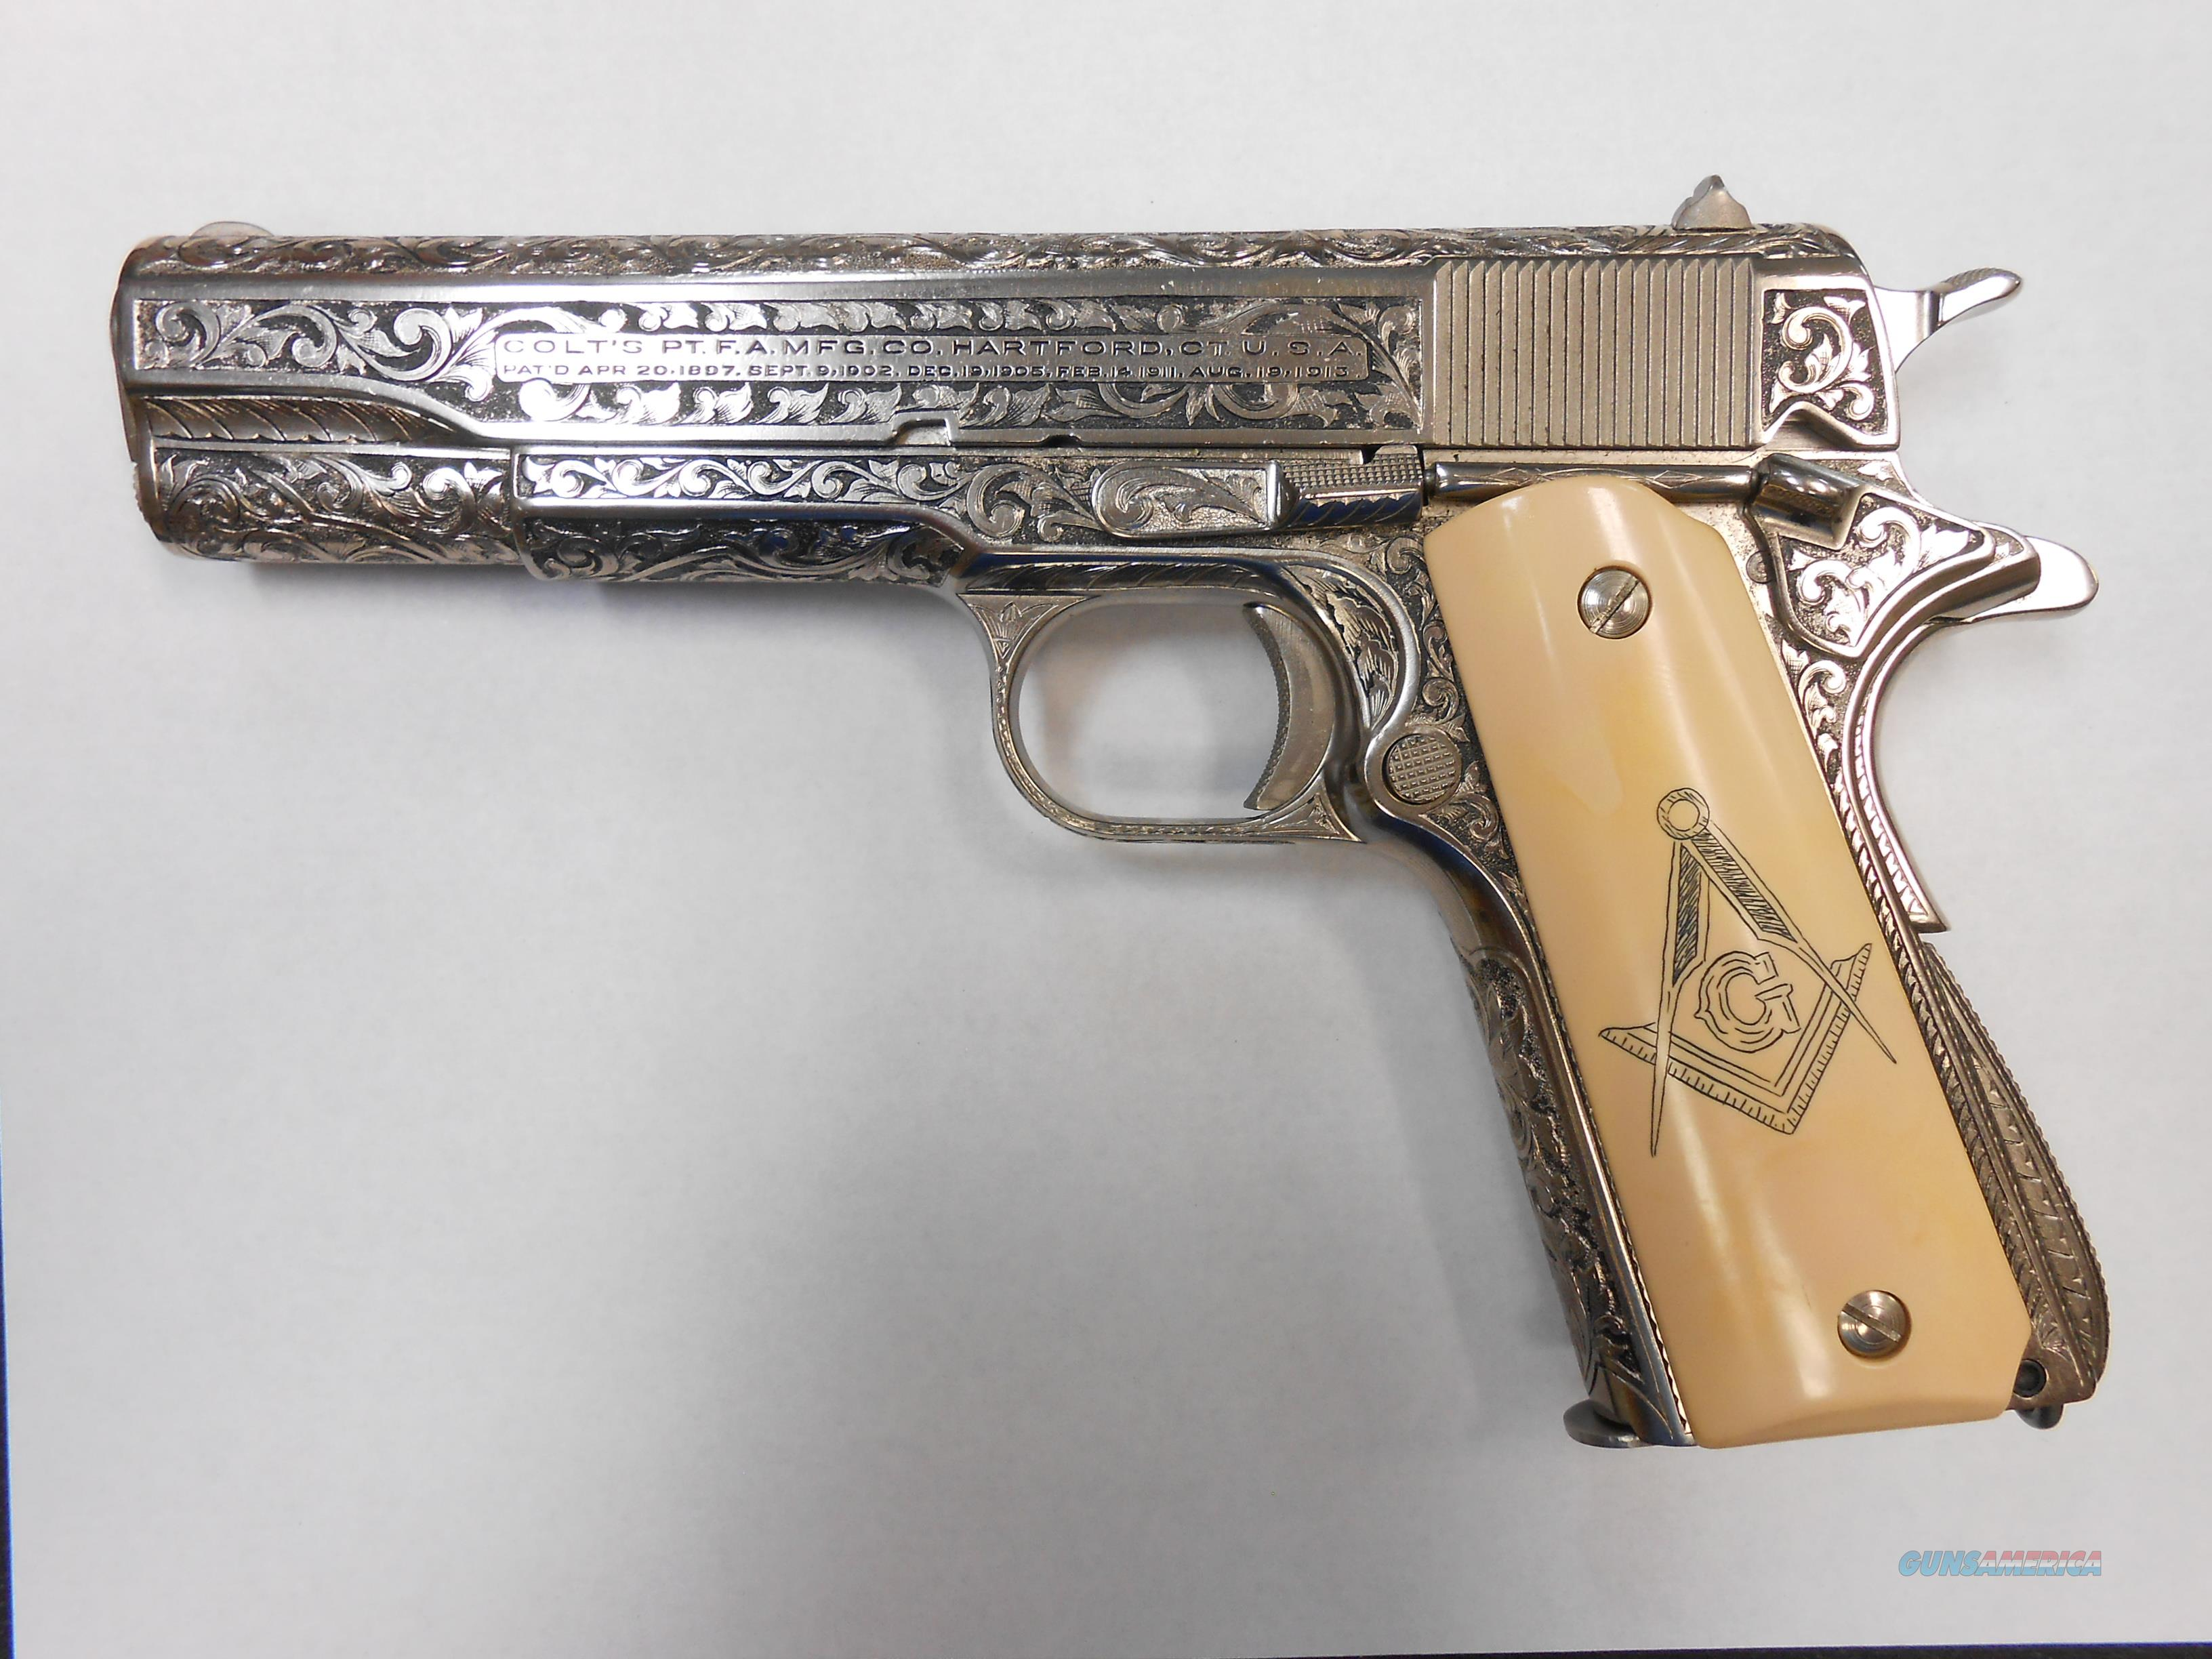 1940's Colt 1911 Hand engraved with Square and Compass grips  Guns > Pistols > Colt Automatic Pistols (1911 & Var)